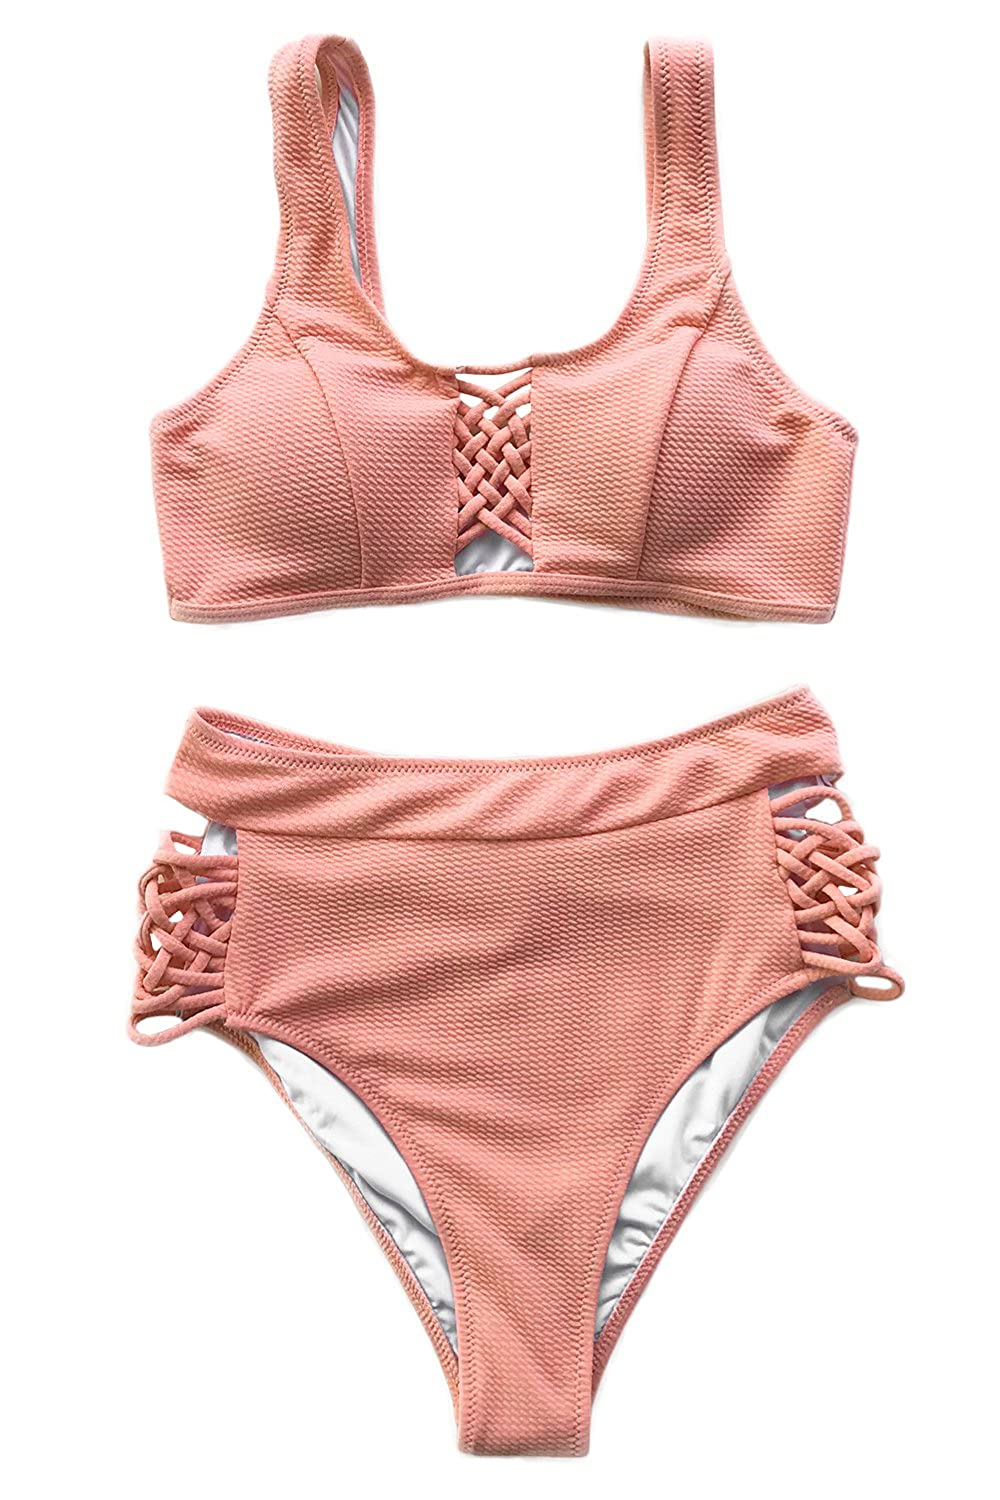 Cupshe Fashion Women's Delicate Darling Lace Up High Waisted Swimsuit Beach Swimwear Bathing Suit by Cupshe